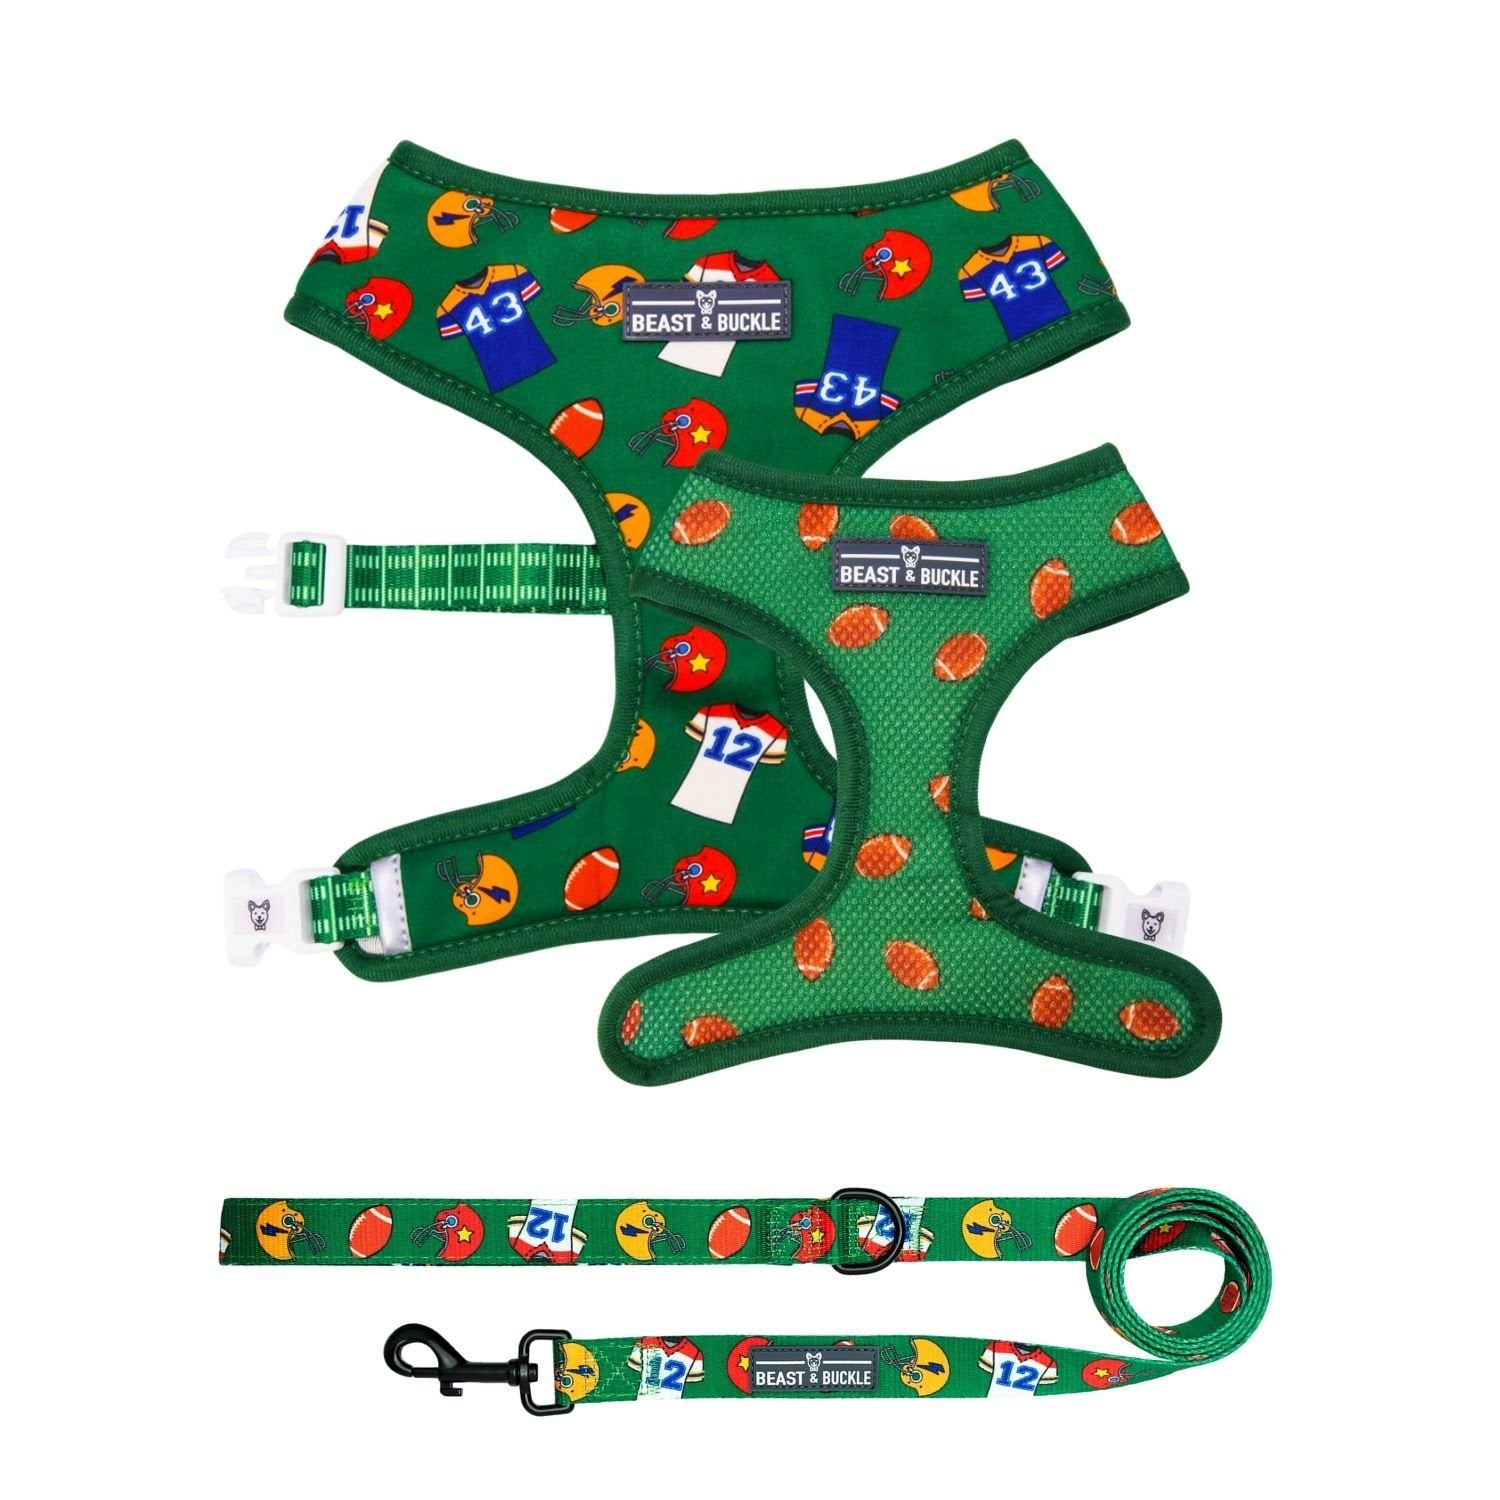 Football Harness and Leash Set - Beast & Buckle